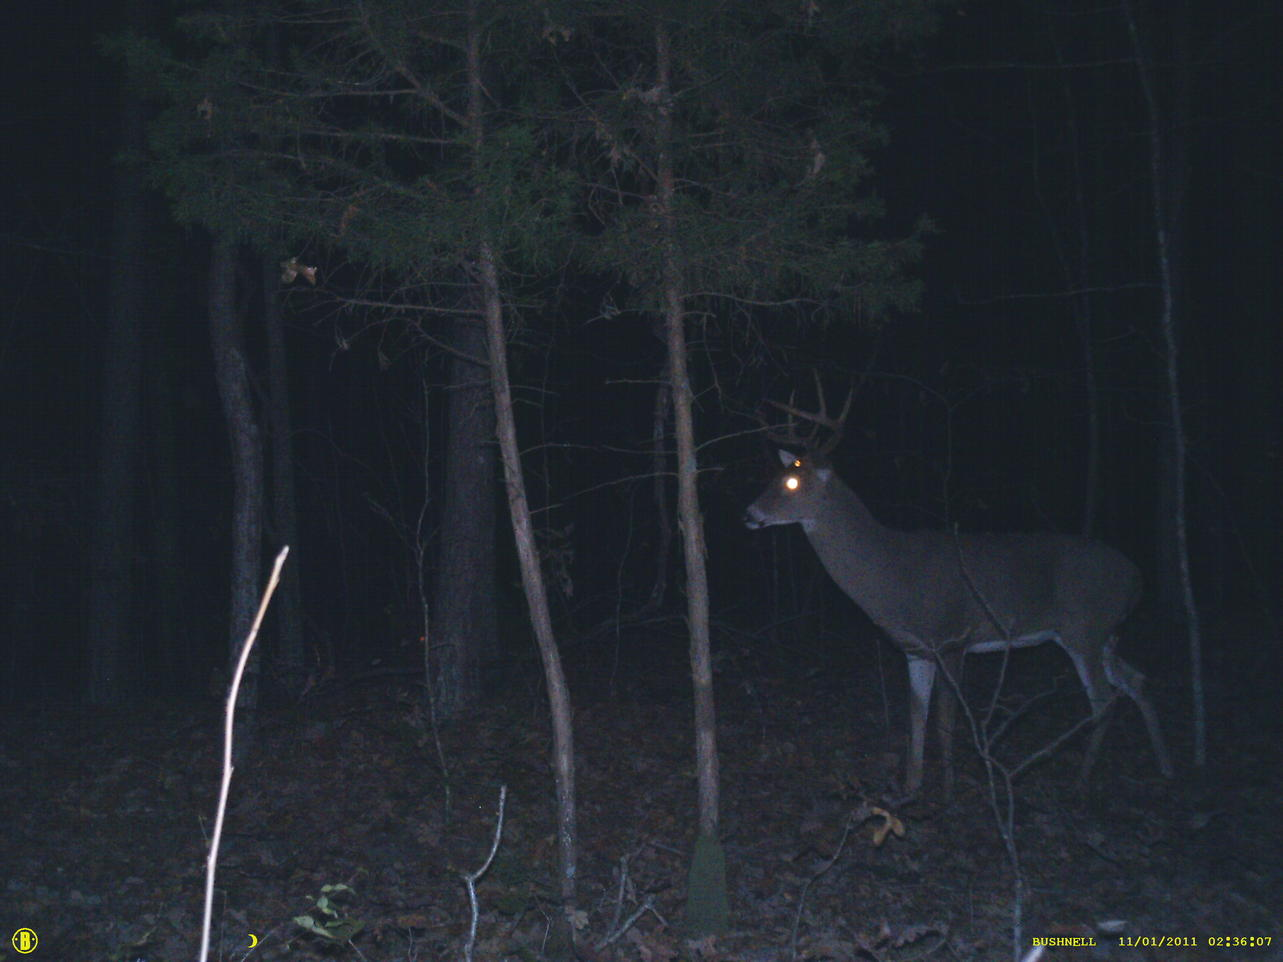 picking out trail cam-sunp0022.jpg